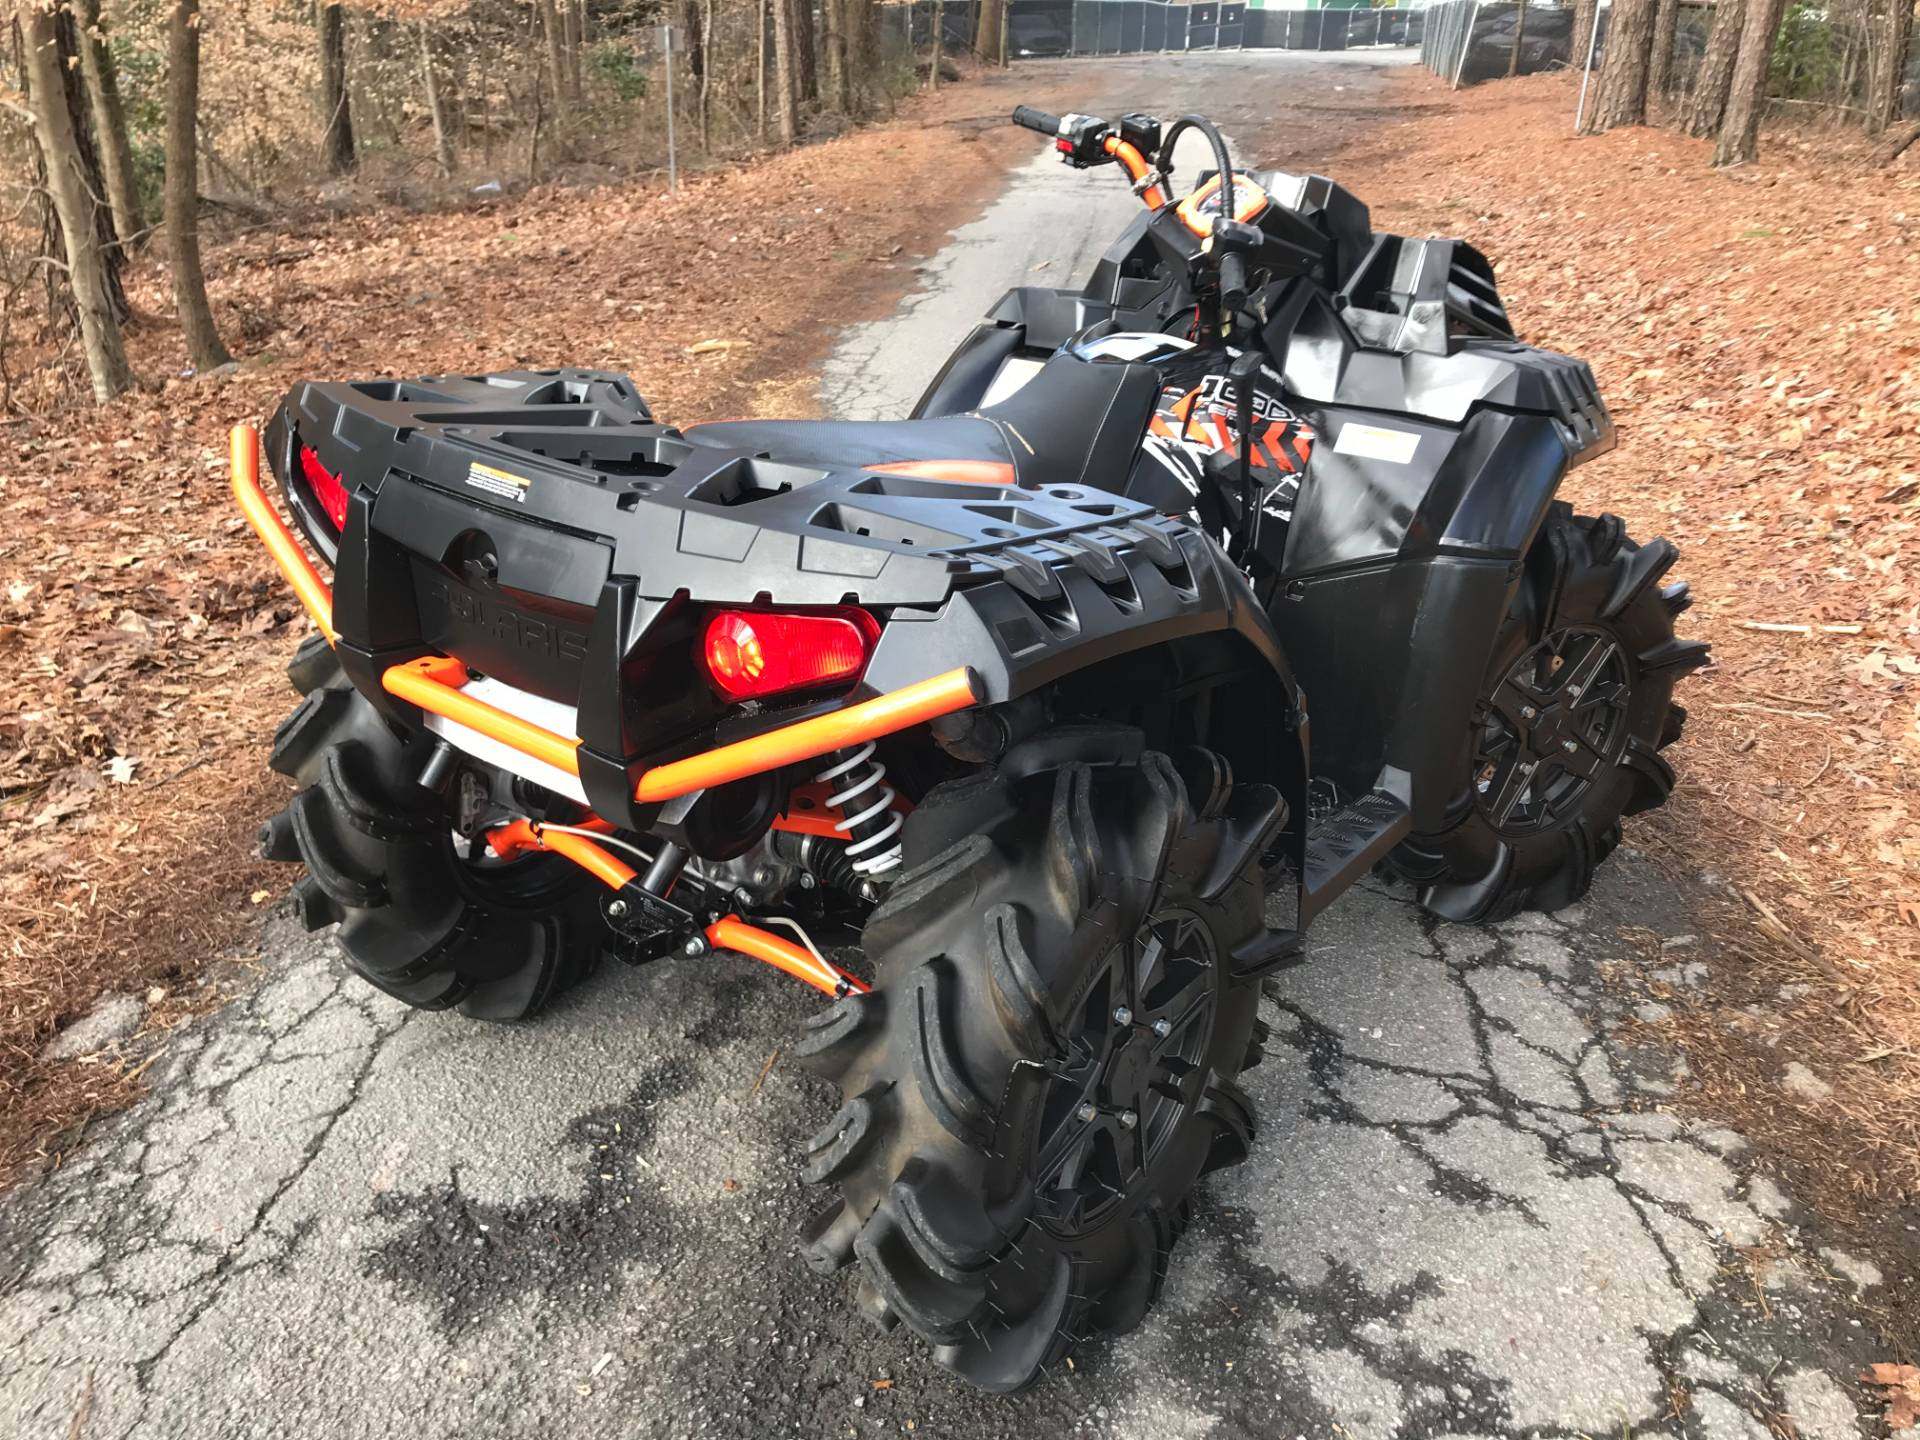 2016 POLARIS SPORTSMAN 1000 XP HIGH LIFTER in Woodstock, Georgia - Photo 4